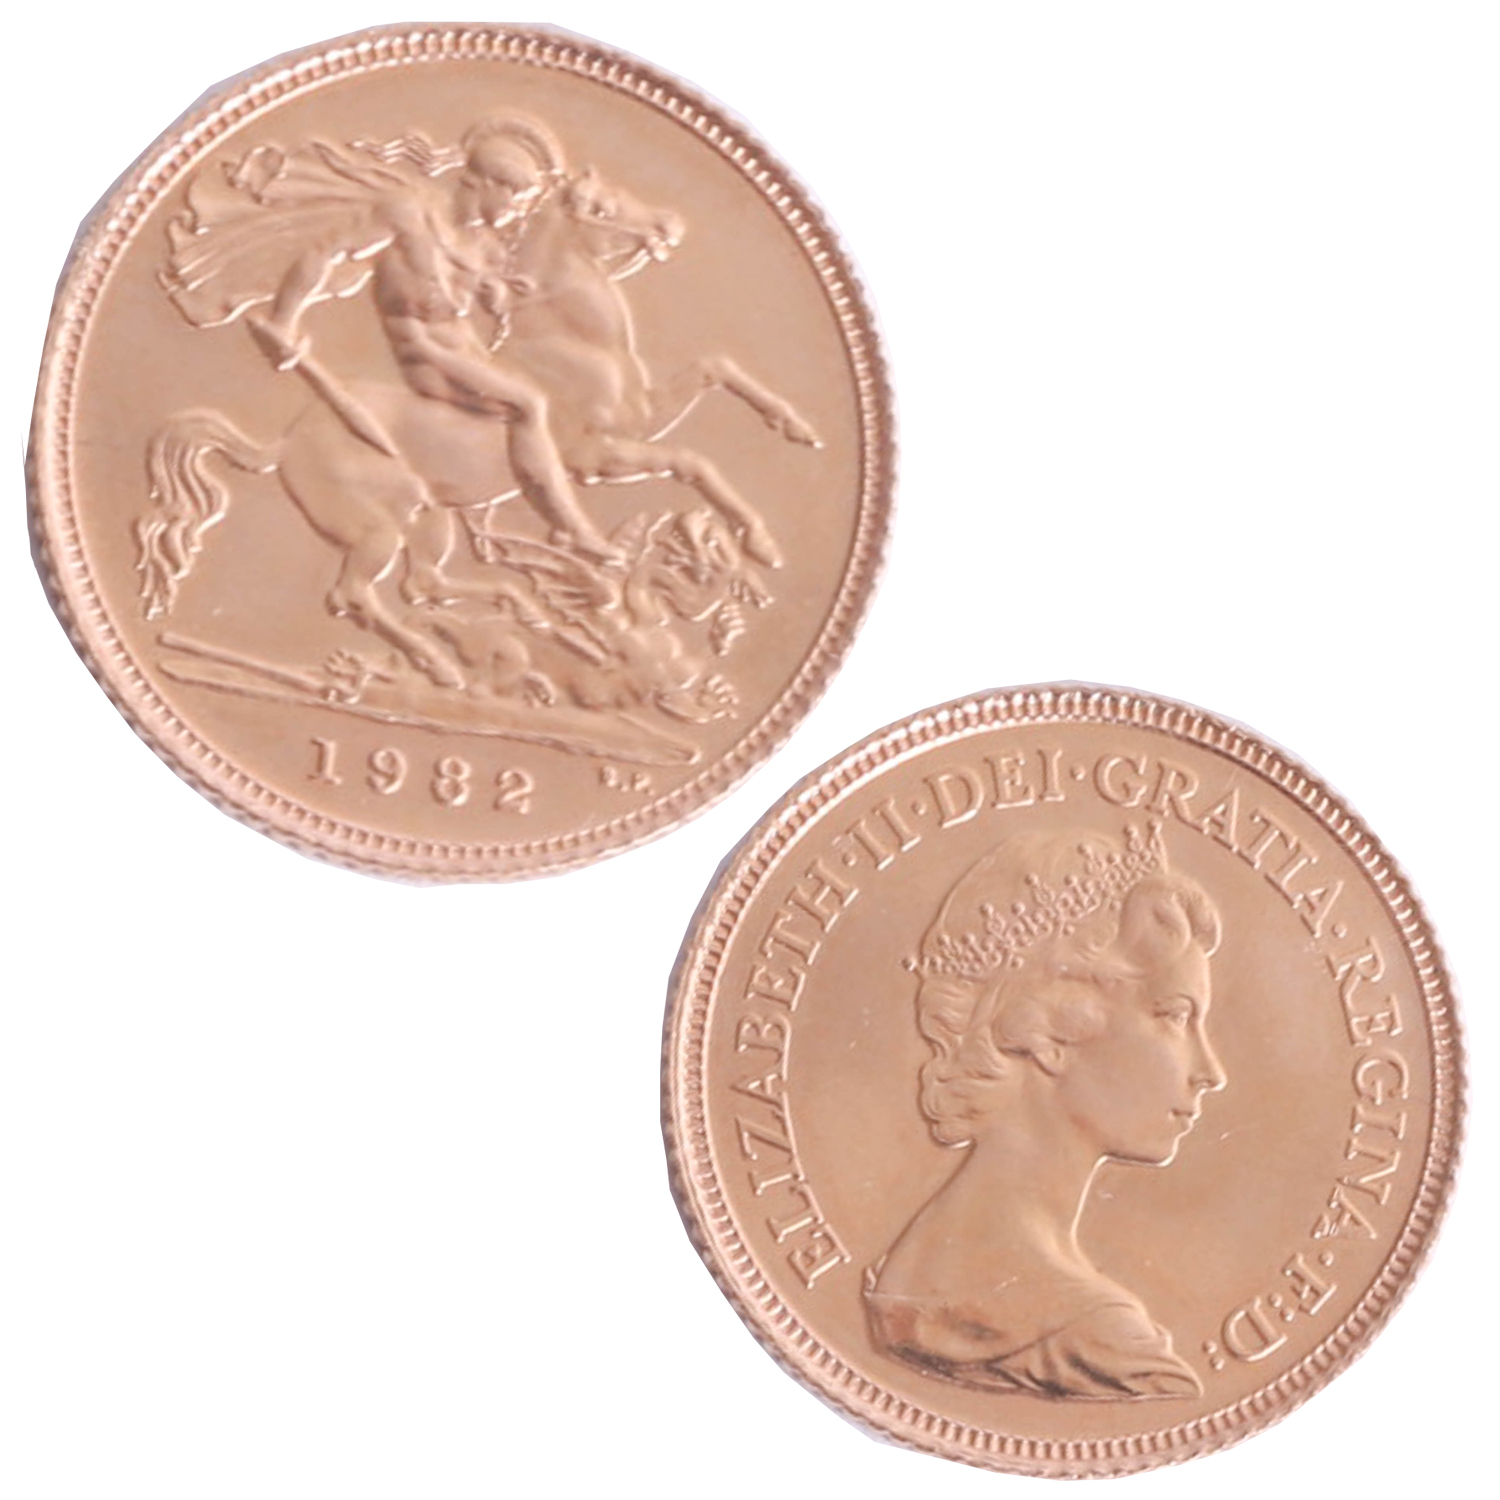 Lot 042 - Queen Elizabeth II 1982, half sovereign.